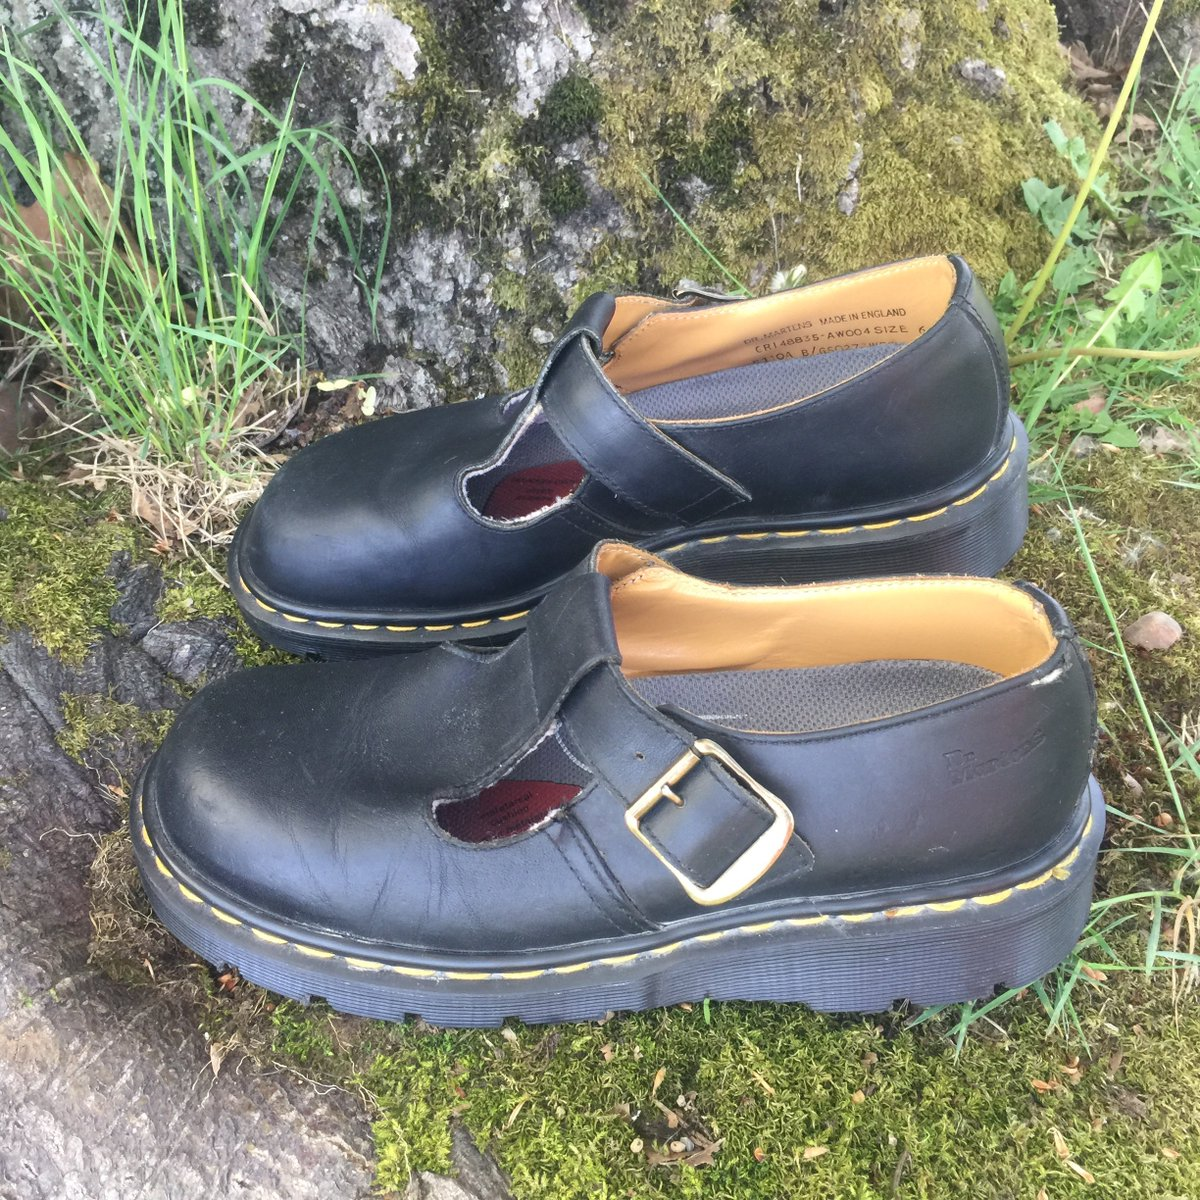 Excited to share the latest addition to my #etsy shop: Doc Martens Chunky Shoes  #clothing #shoes #women #black #drmartens #size8us #size6uk #buckle #yellowstitching My shop -